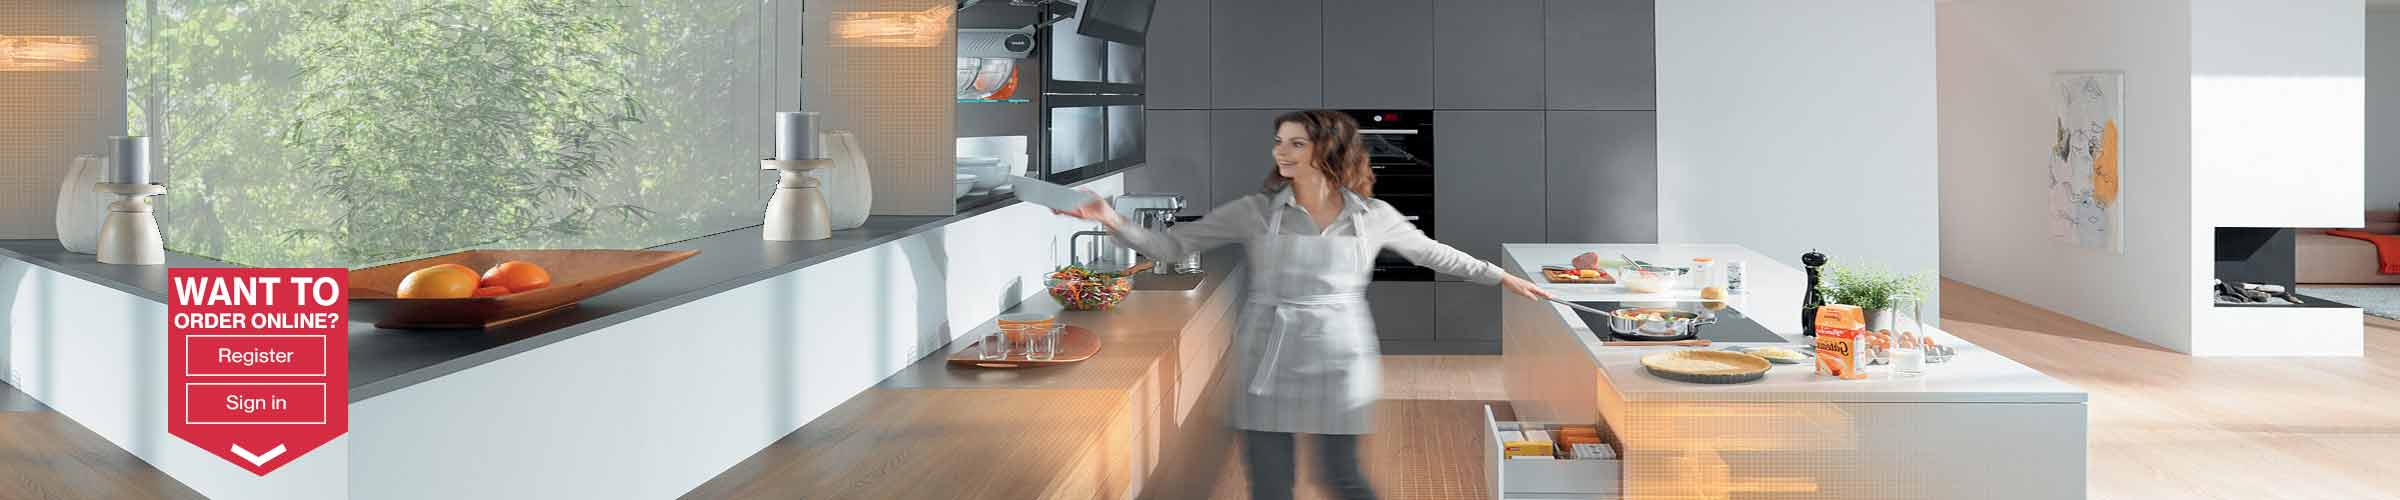 Sensational Kitchens Cabinets Melbourne Cabinet Makers Online Sale Home Interior And Landscaping Mentranervesignezvosmurscom